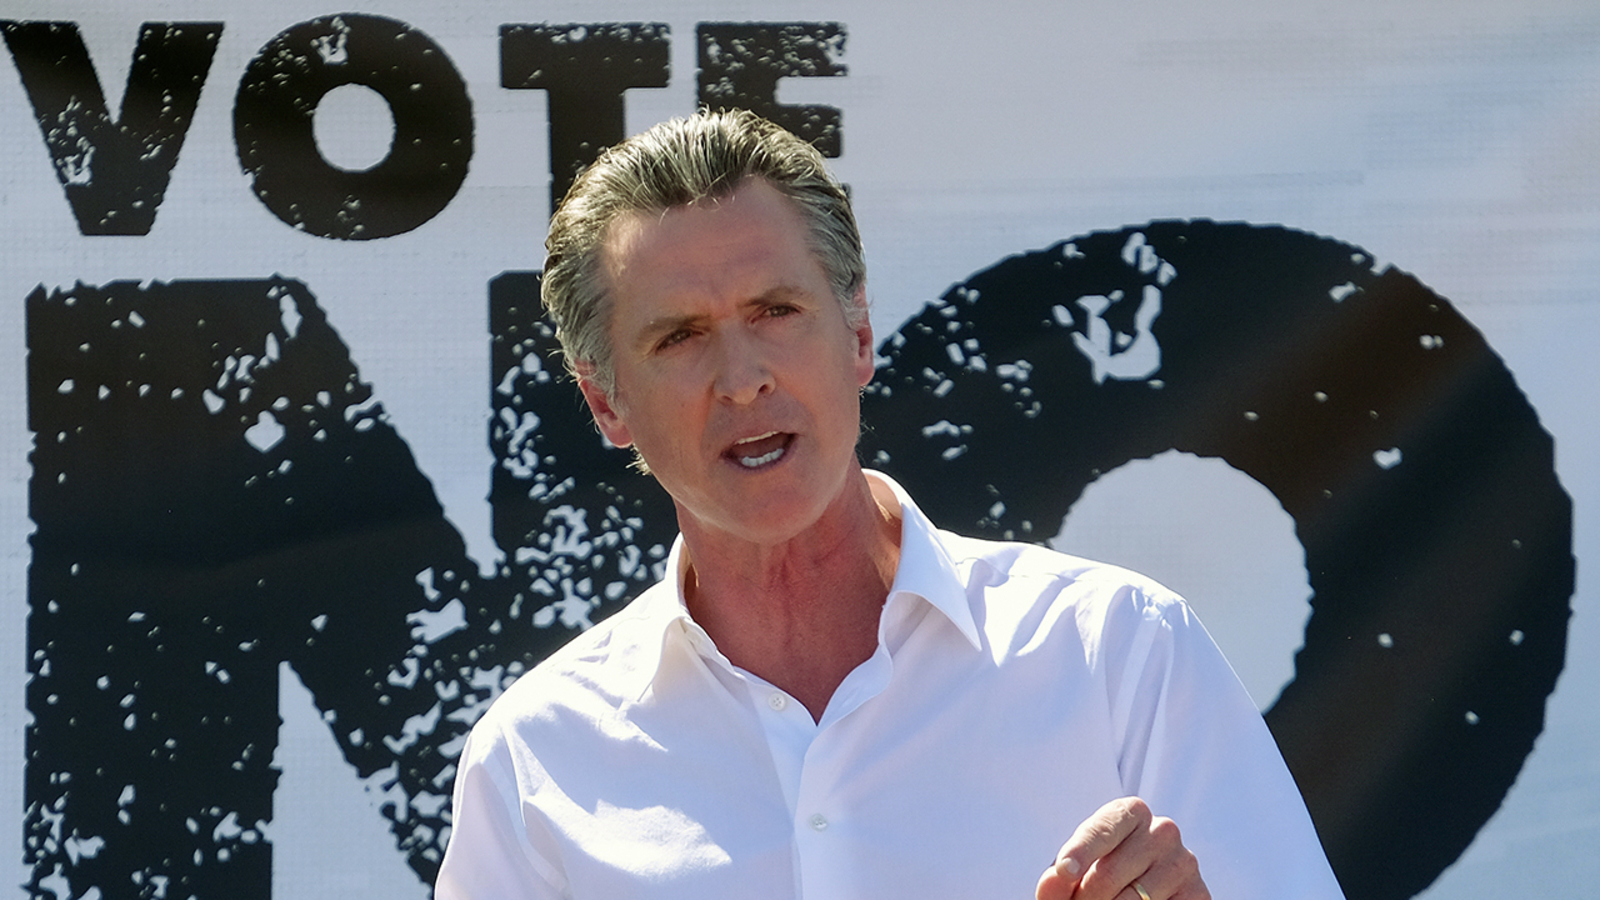 California recall election: Here's how <b>twitter</b> reacted to Governor Gavin Newsom's big win ... thumbnail